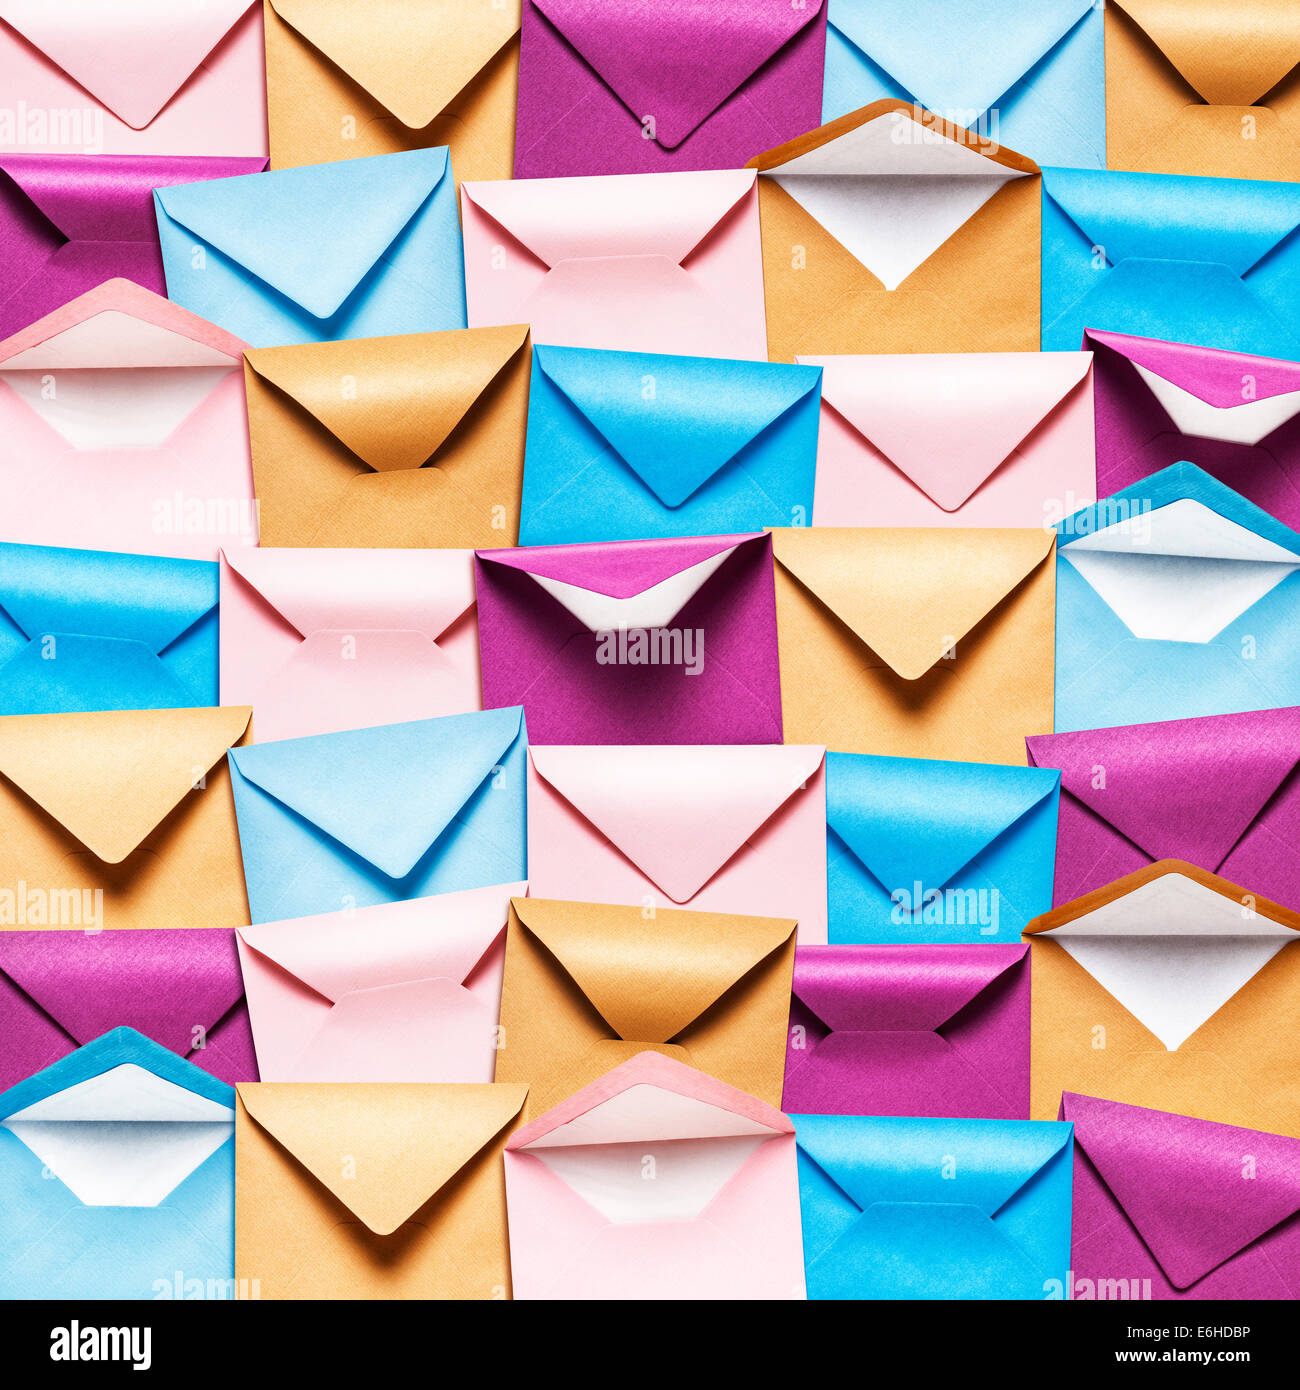 Background with rows of colorful envelopes, Pink, blue and brown envelope collection. - Stock Image